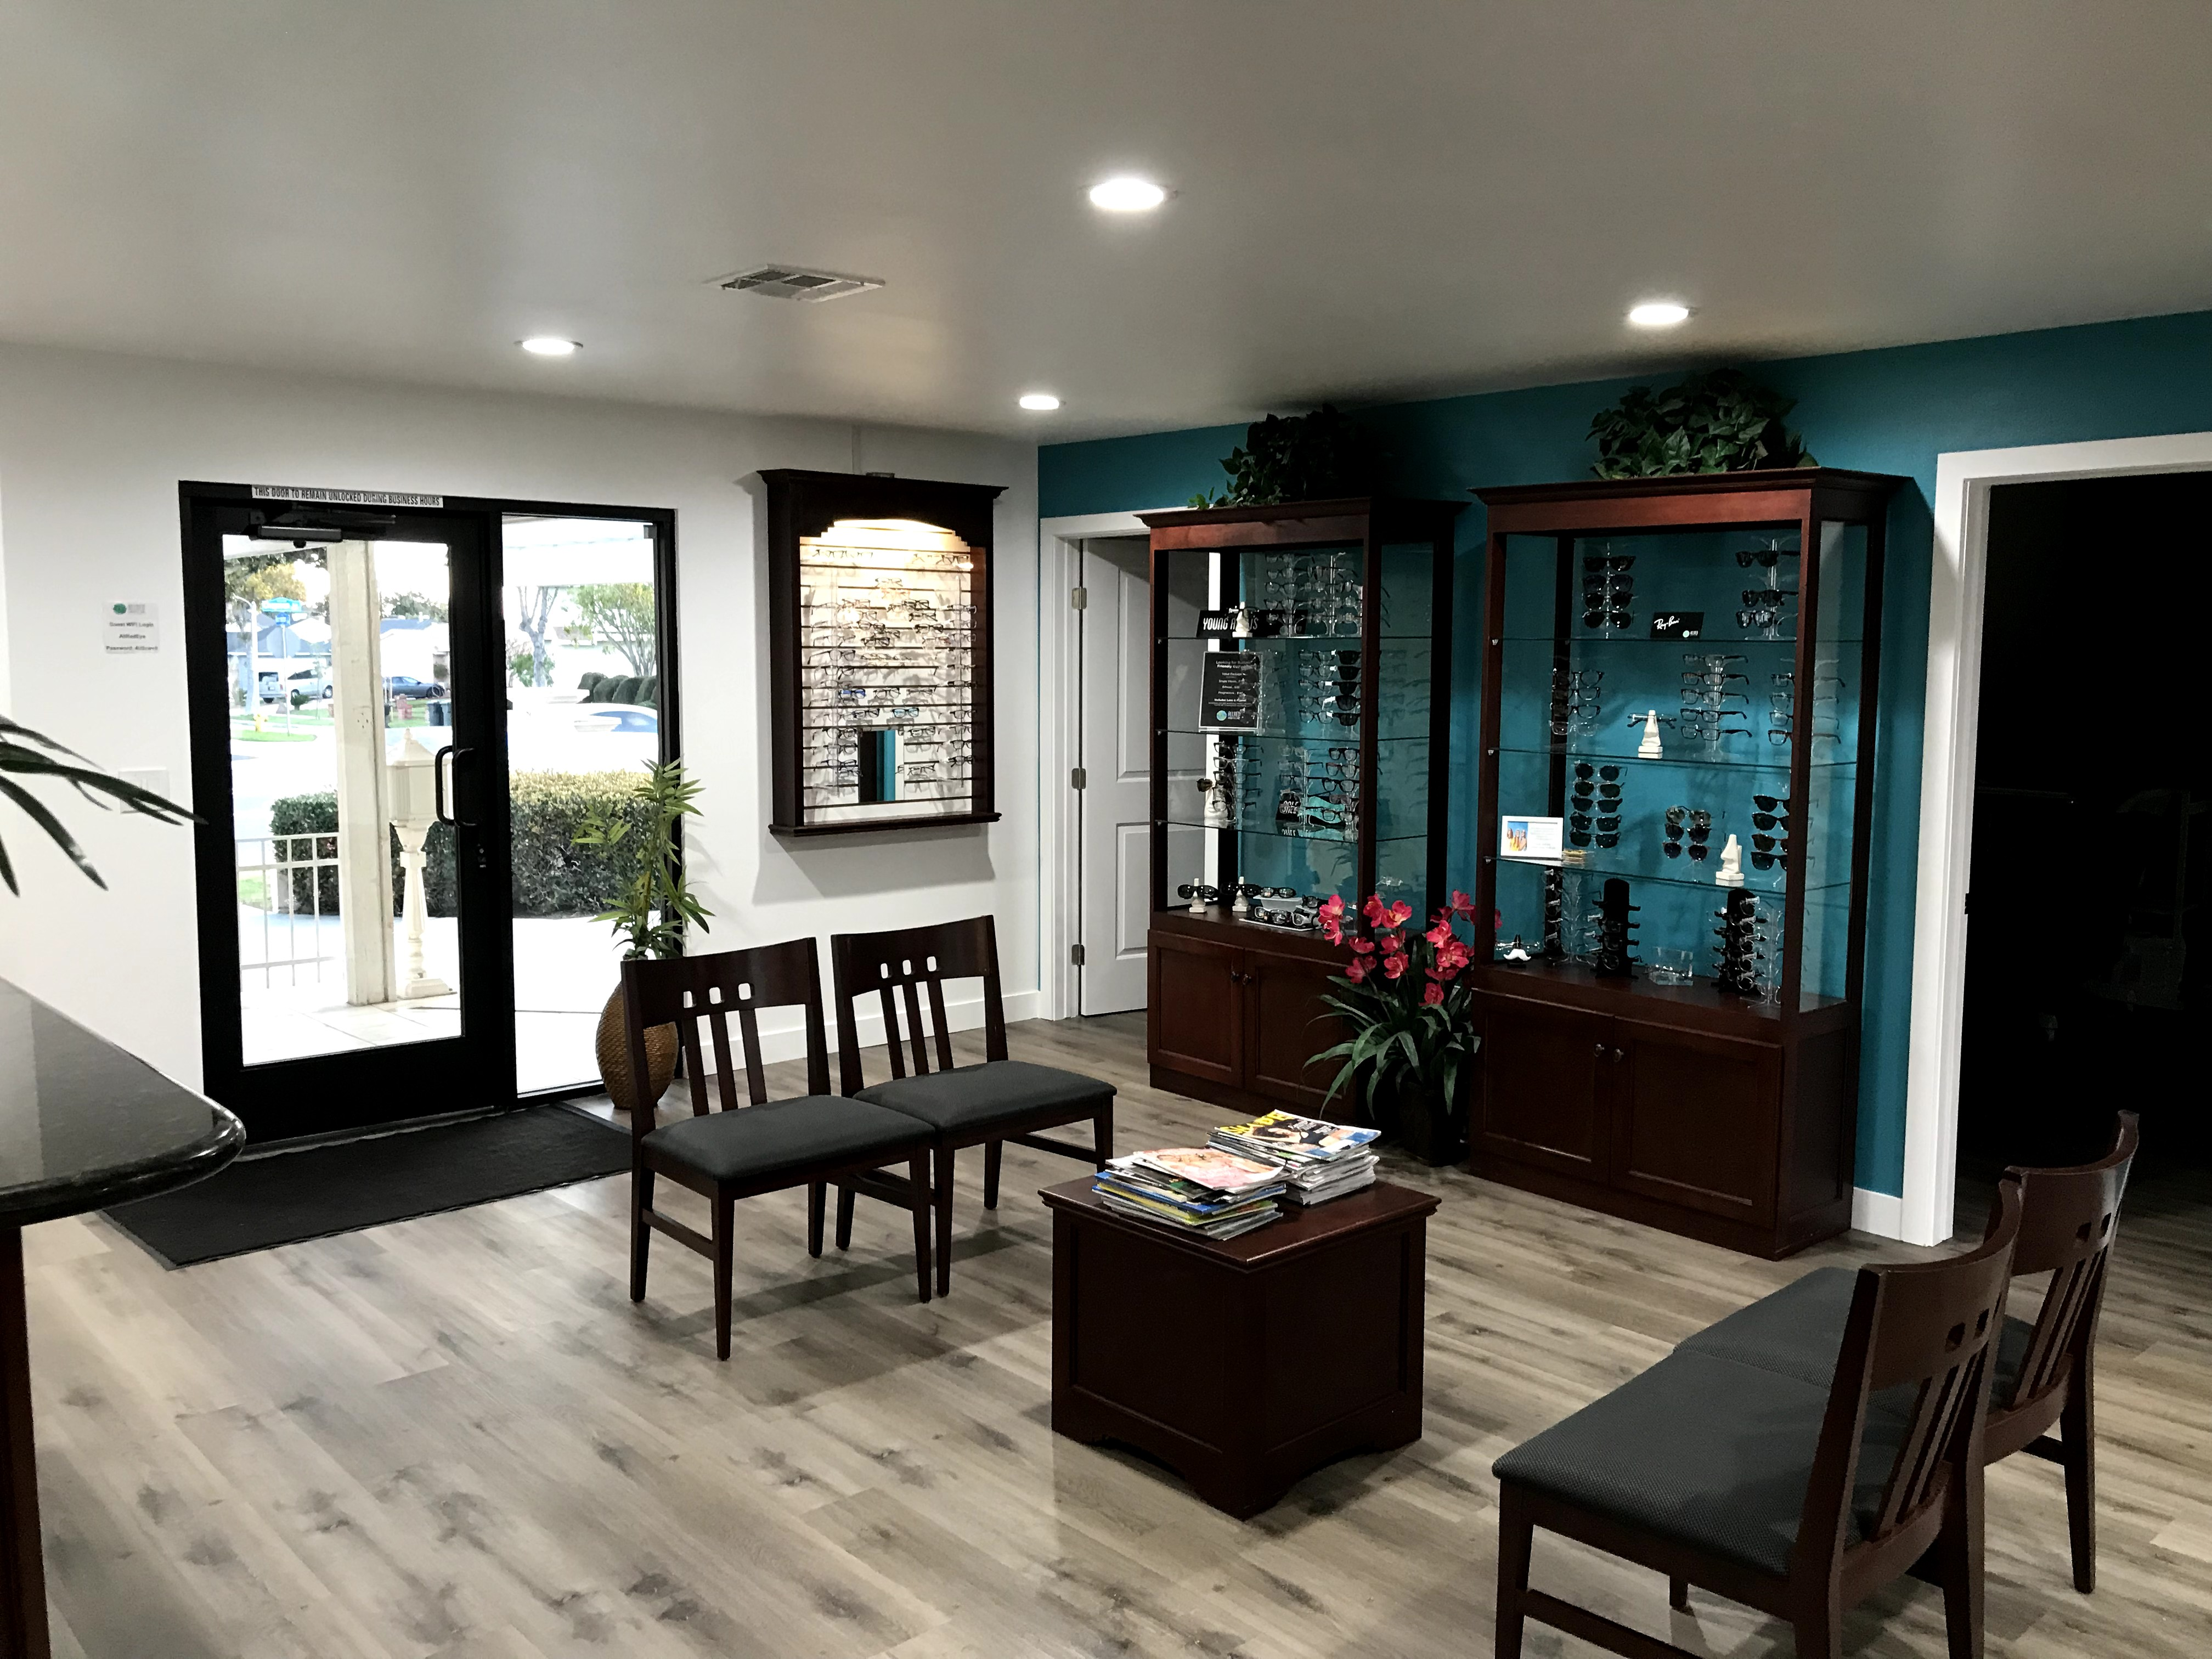 Ophthalmologist Office Remodel